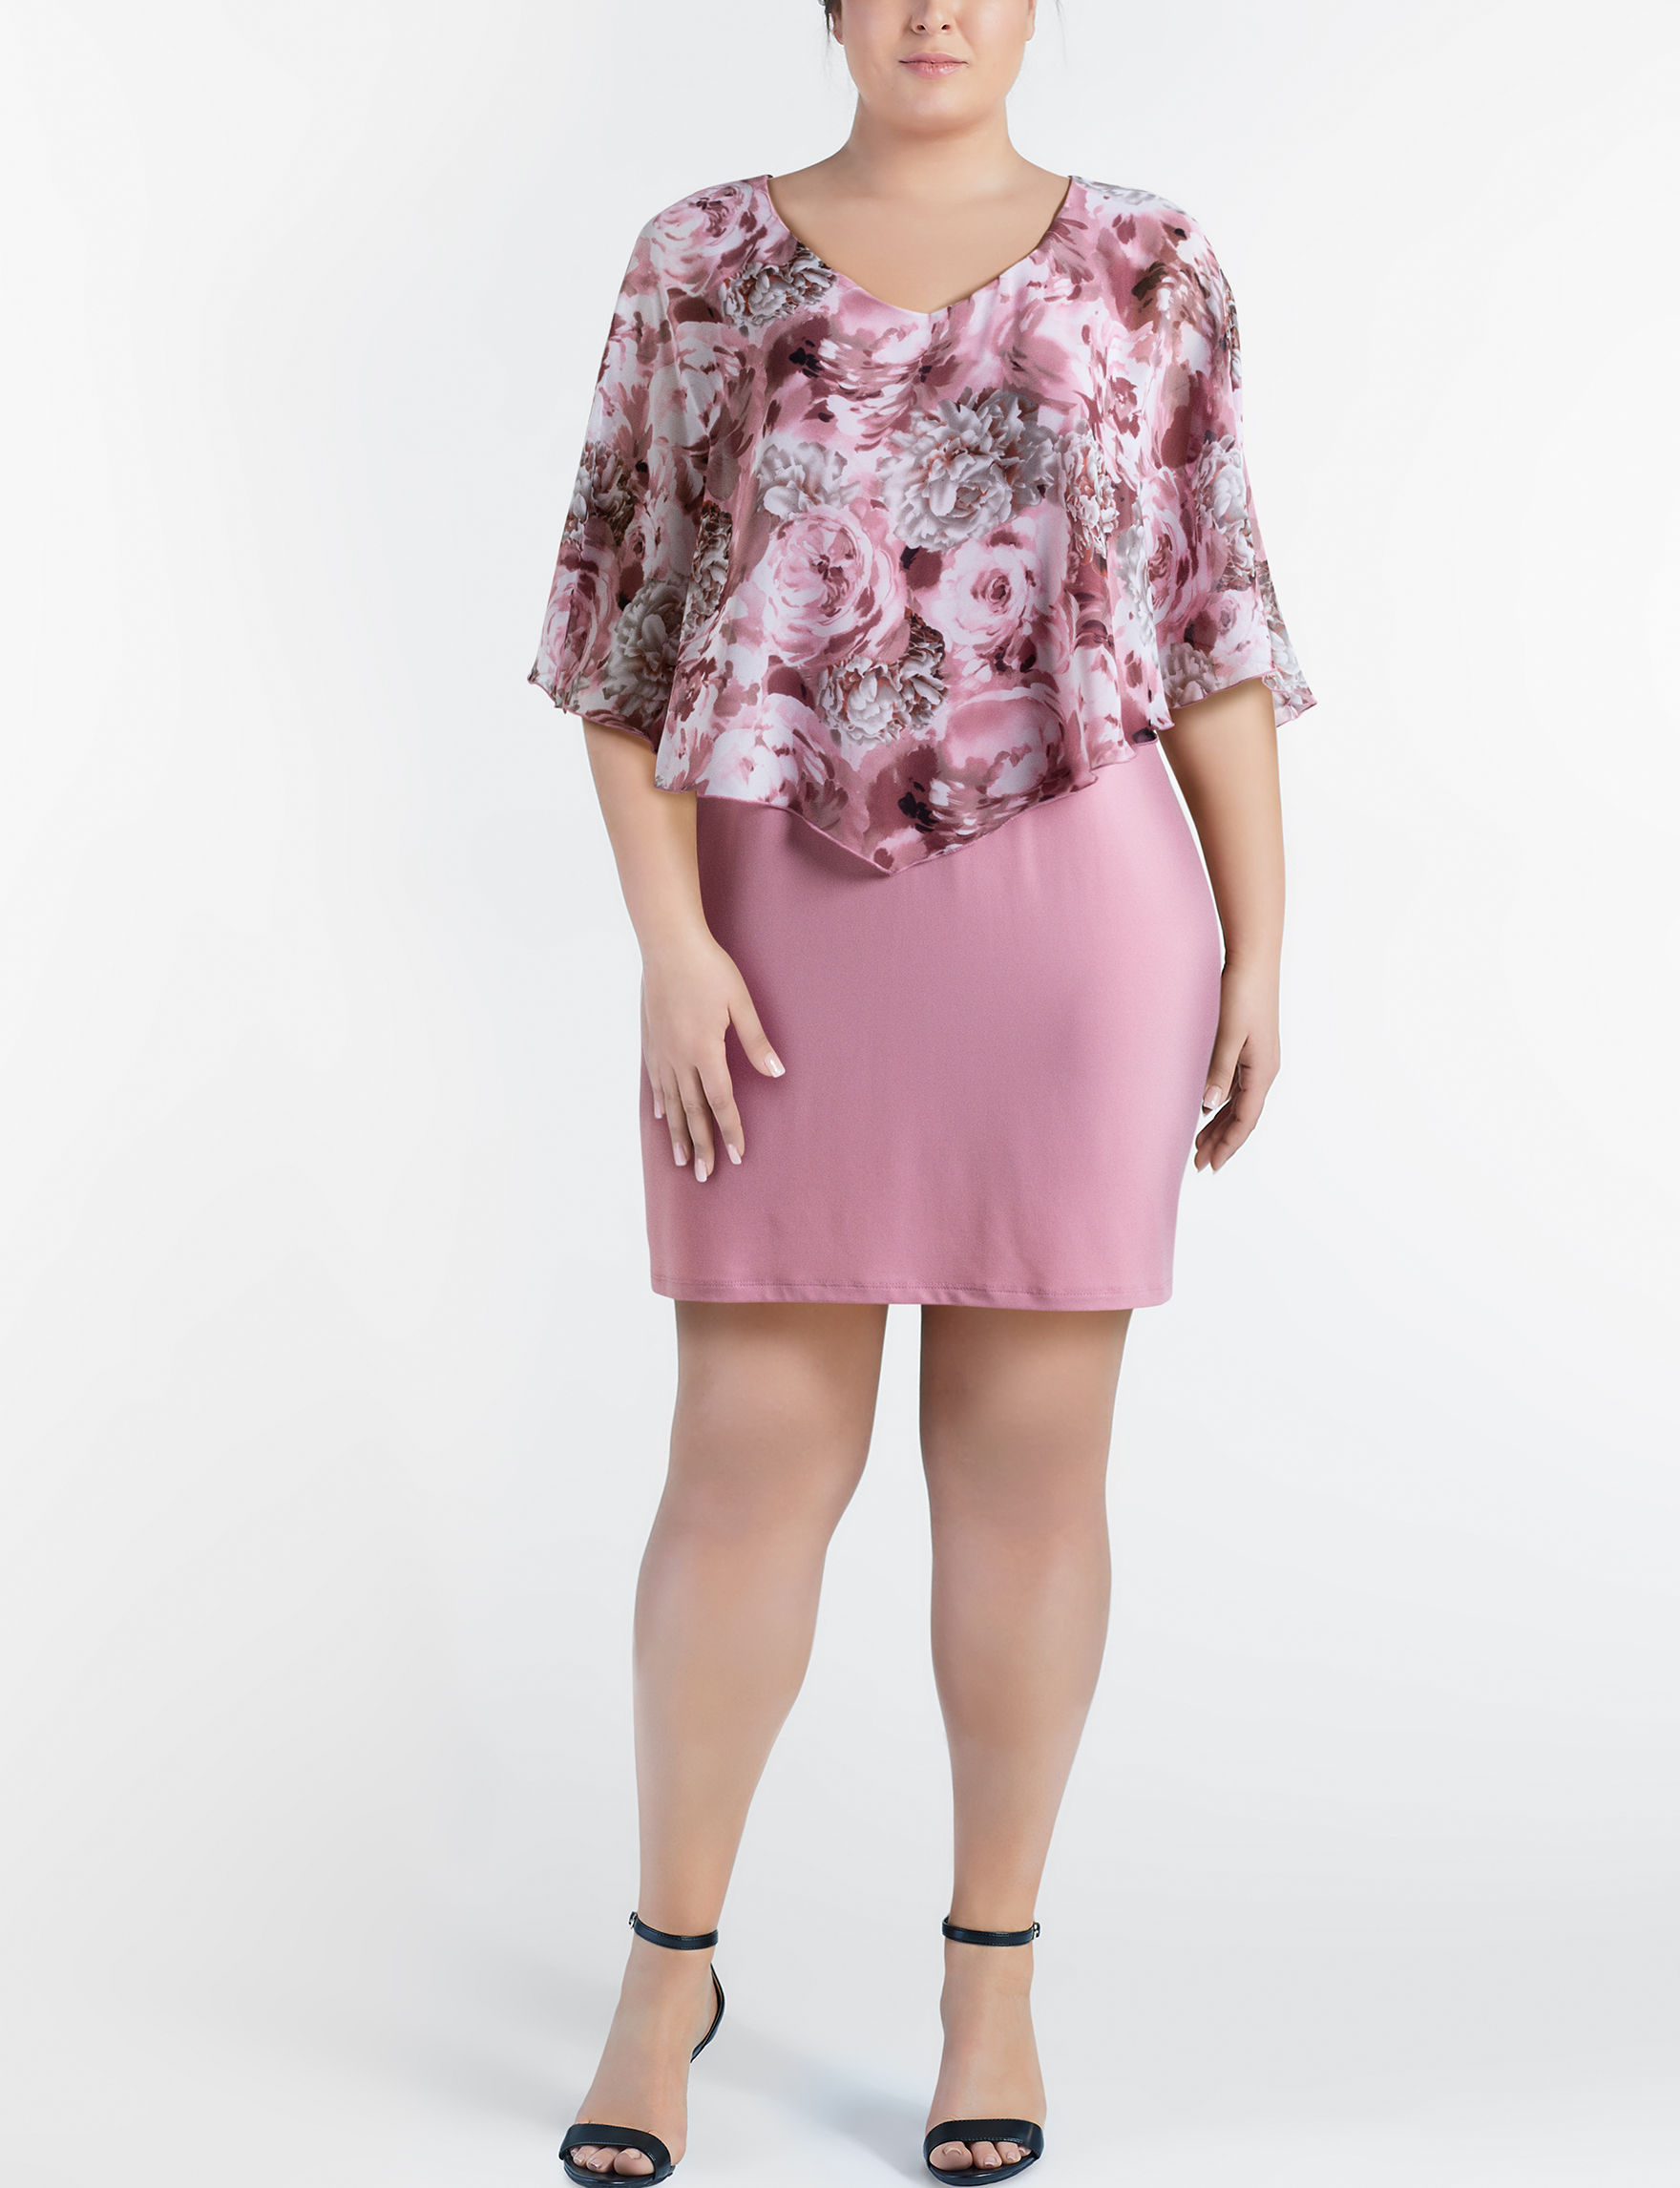 Connected Rose Everyday & Casual Jacket Dresses